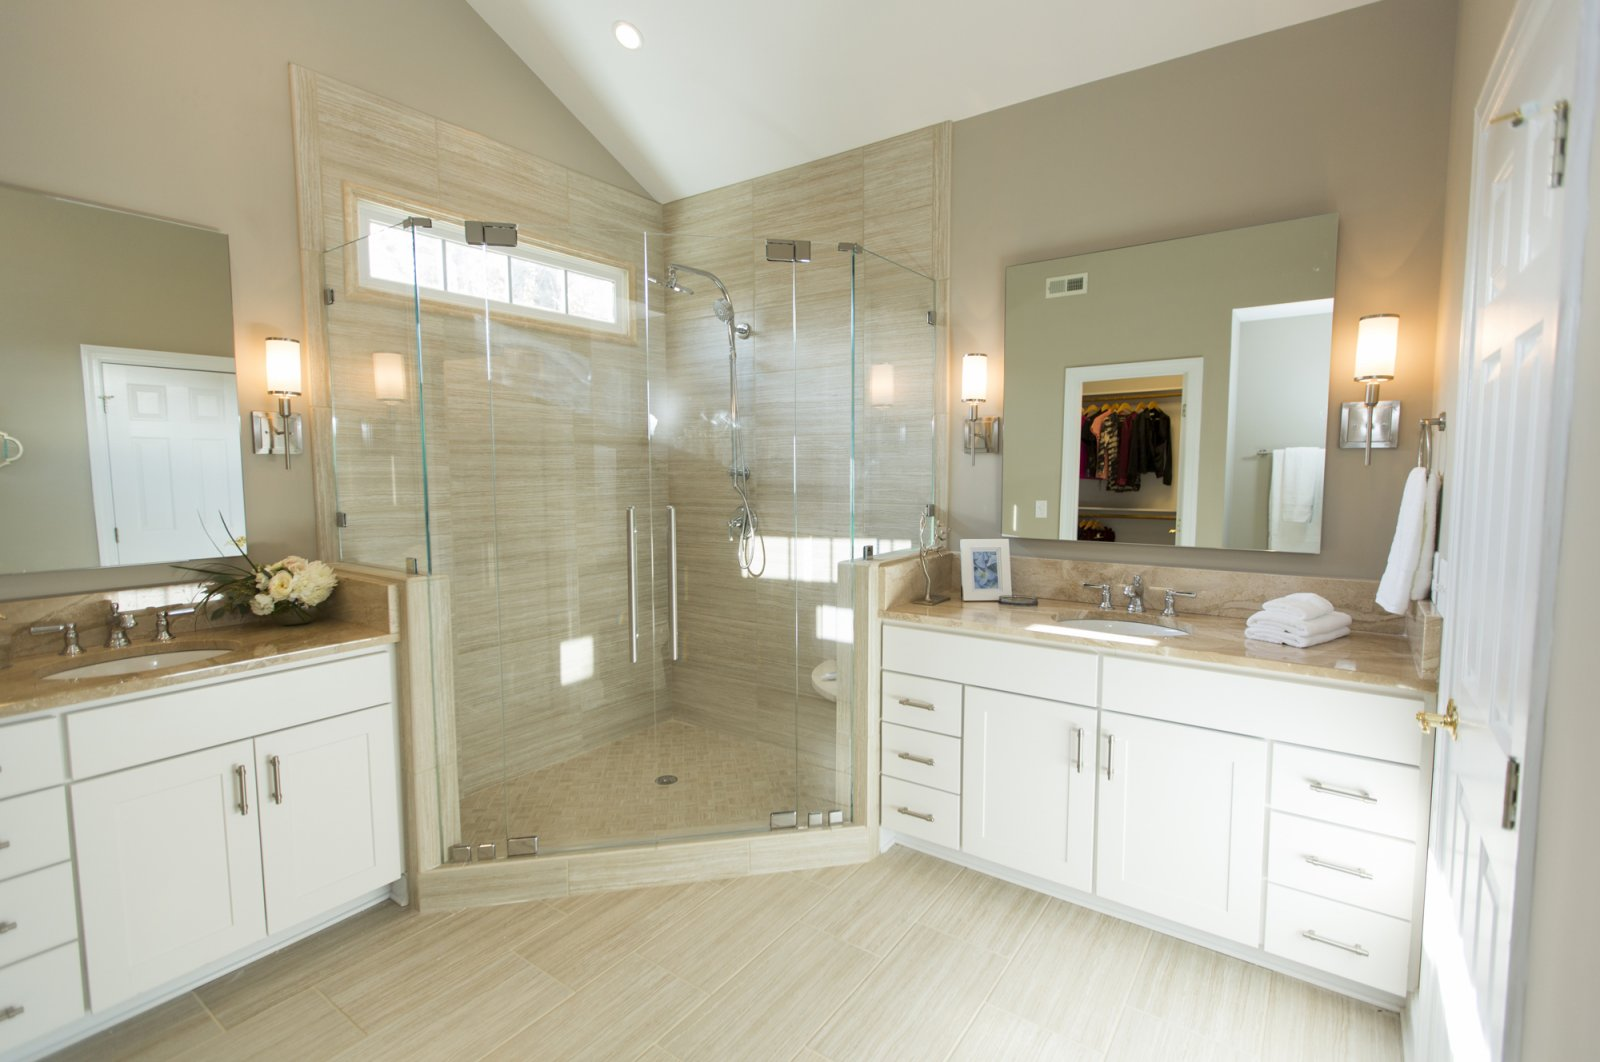 Hgtv Double Door Neo Angle Shower